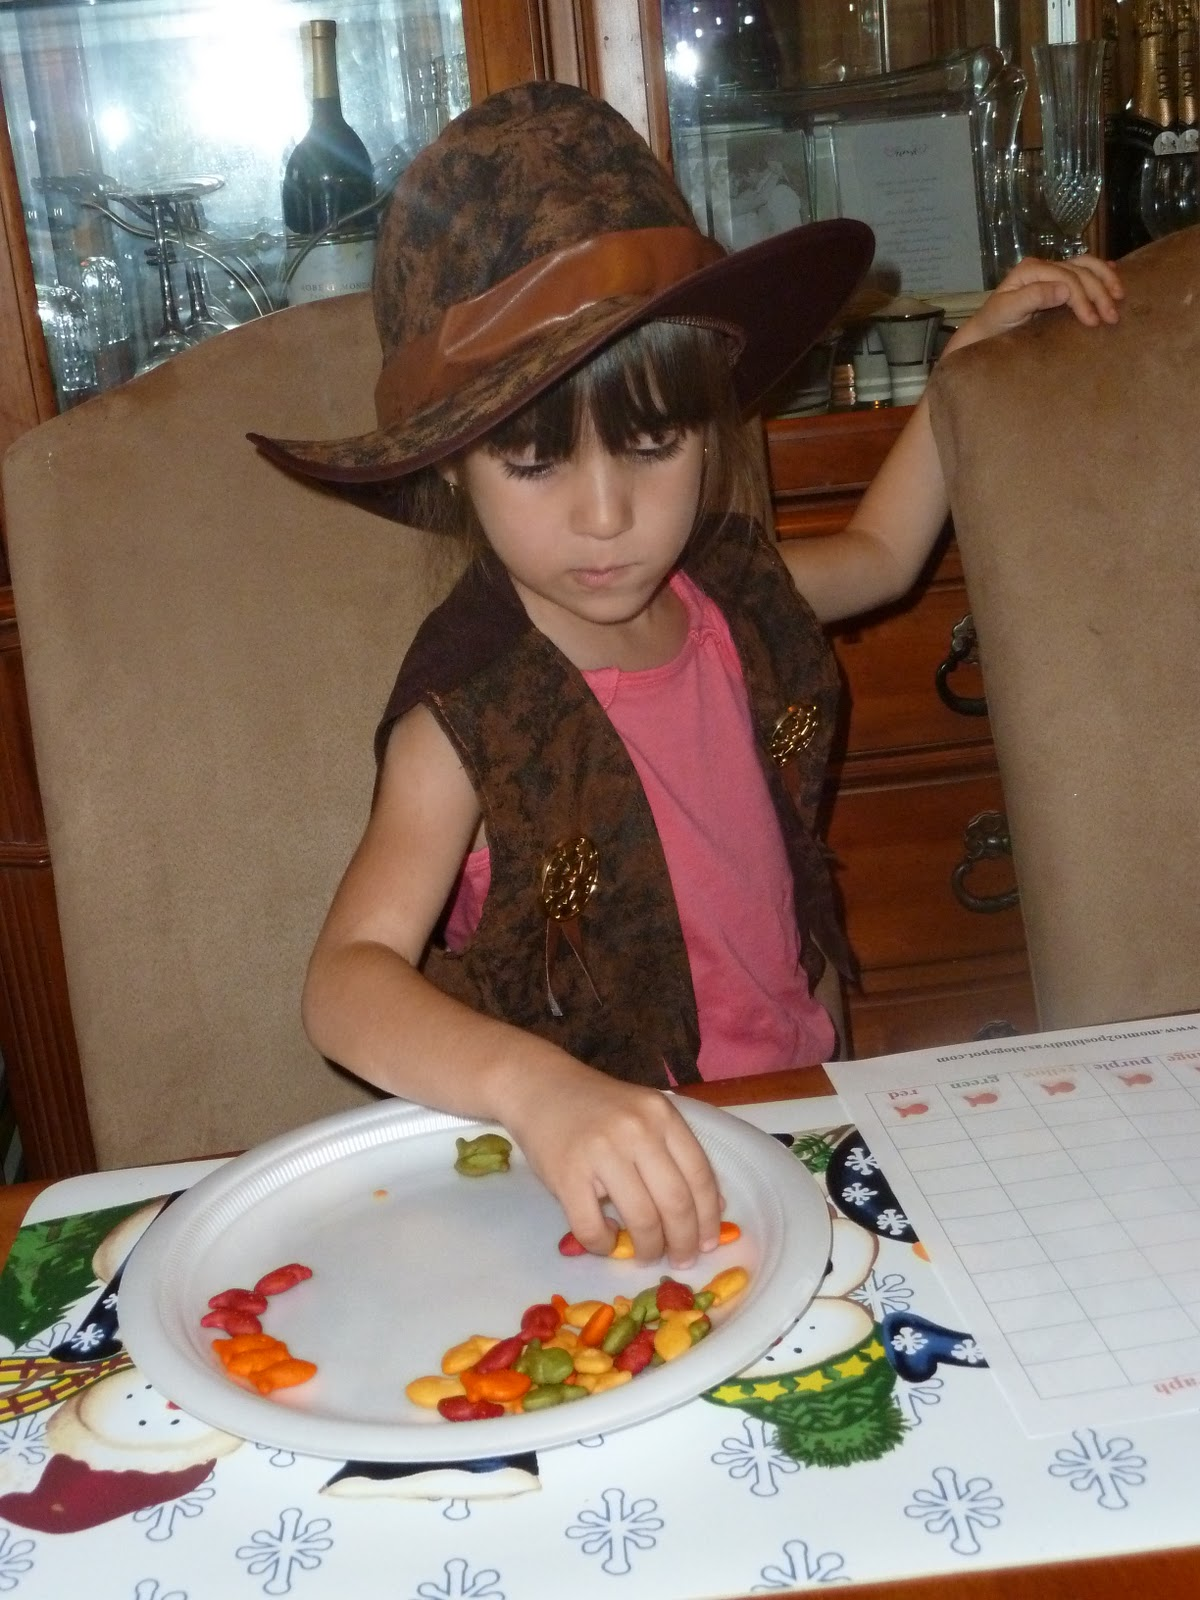 Step 1 Sort The Goldfish By Color Don T You Just Love The Dreesed Up Diva Cowgirl Lol